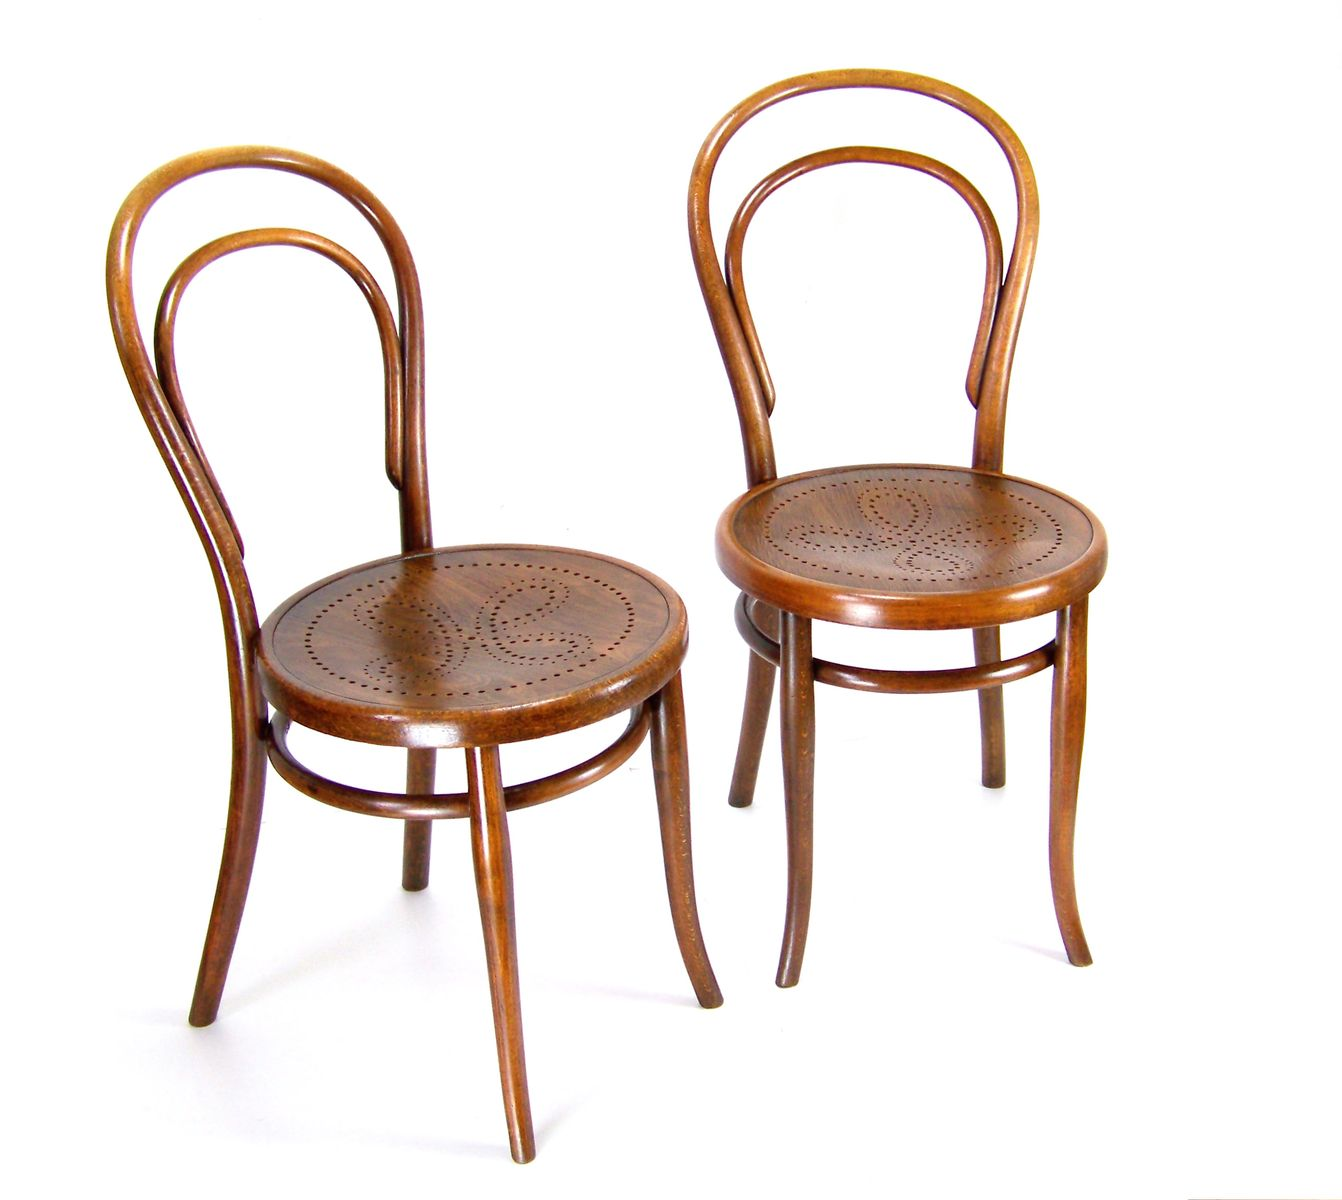 viennese nr 14 chairs from thonet 1900s set of 2 for sale at pamono. Black Bedroom Furniture Sets. Home Design Ideas